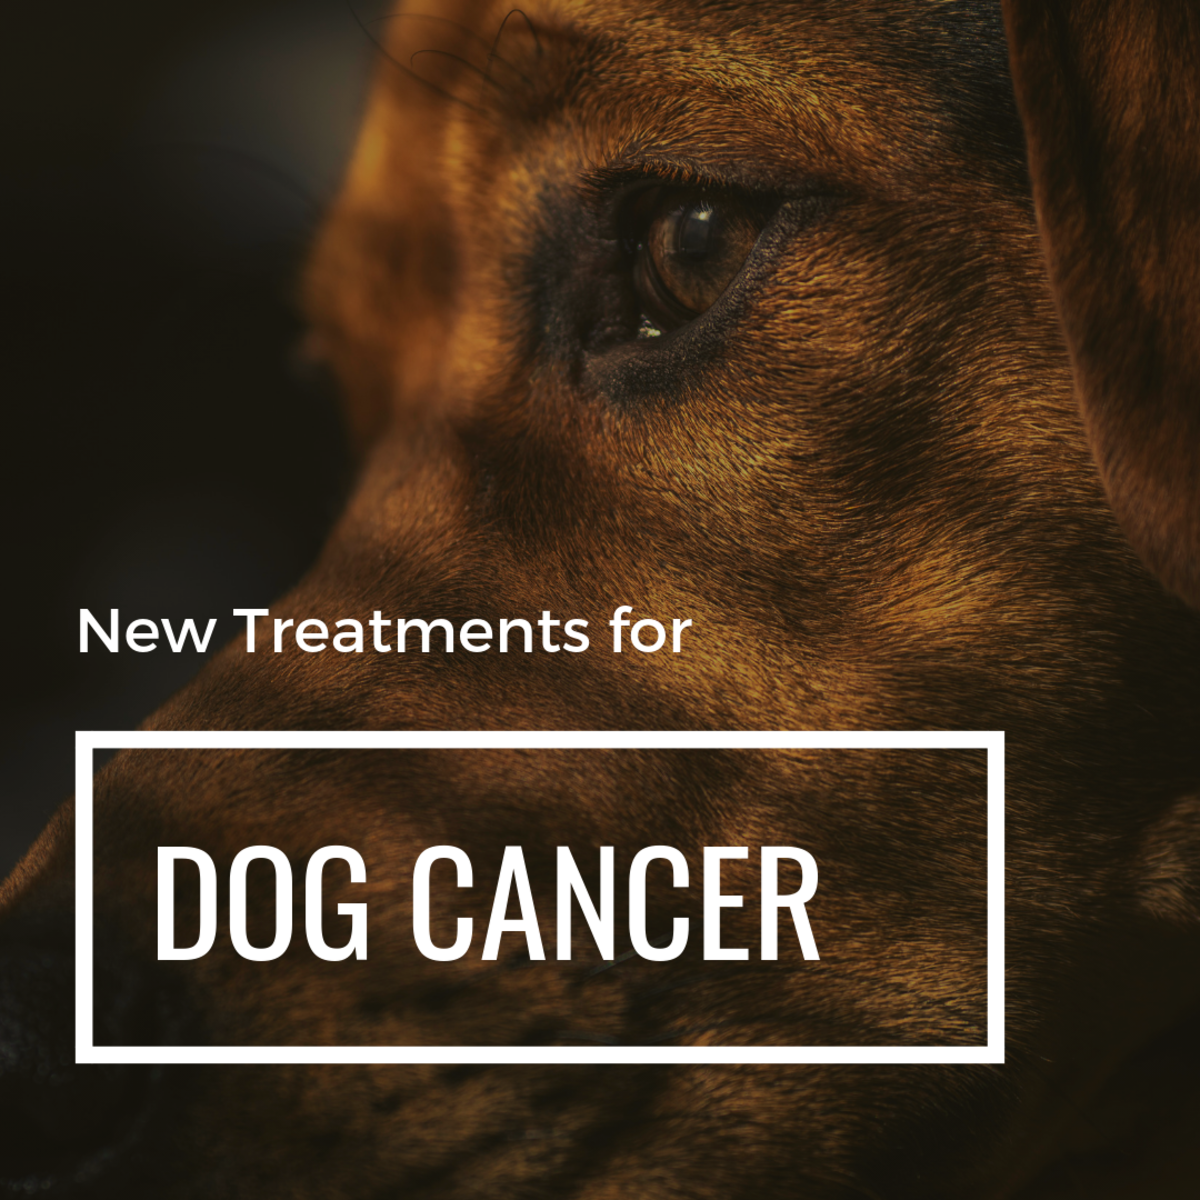 Dog Hemangiosarcoma: Proven New Treatments That Prolong Life